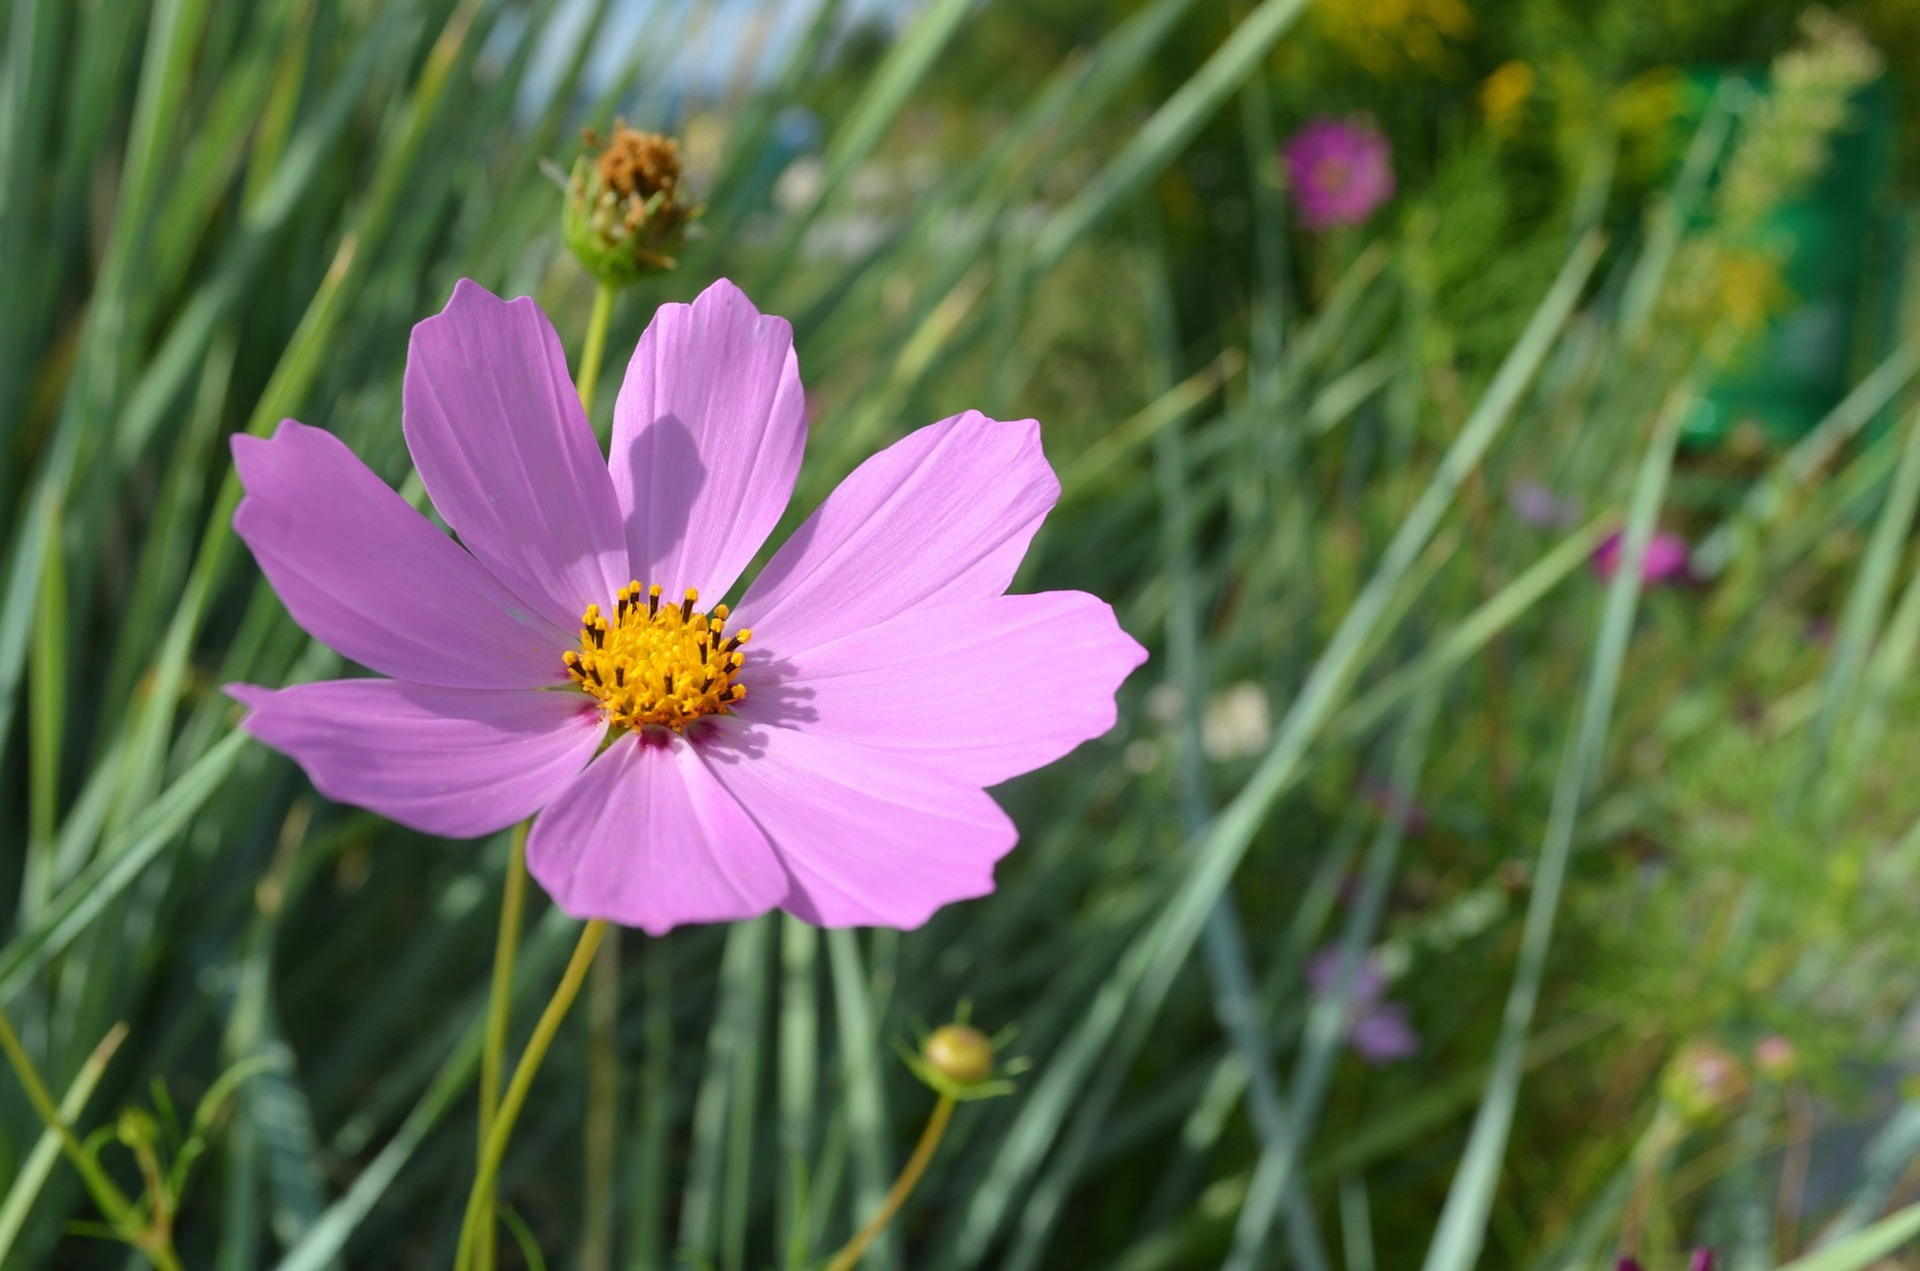 Cosmos how to plant grow and care for cosmos flowers the old cosmos how to plant grow and care for cosmos flowers the old farmers almanac izmirmasajfo